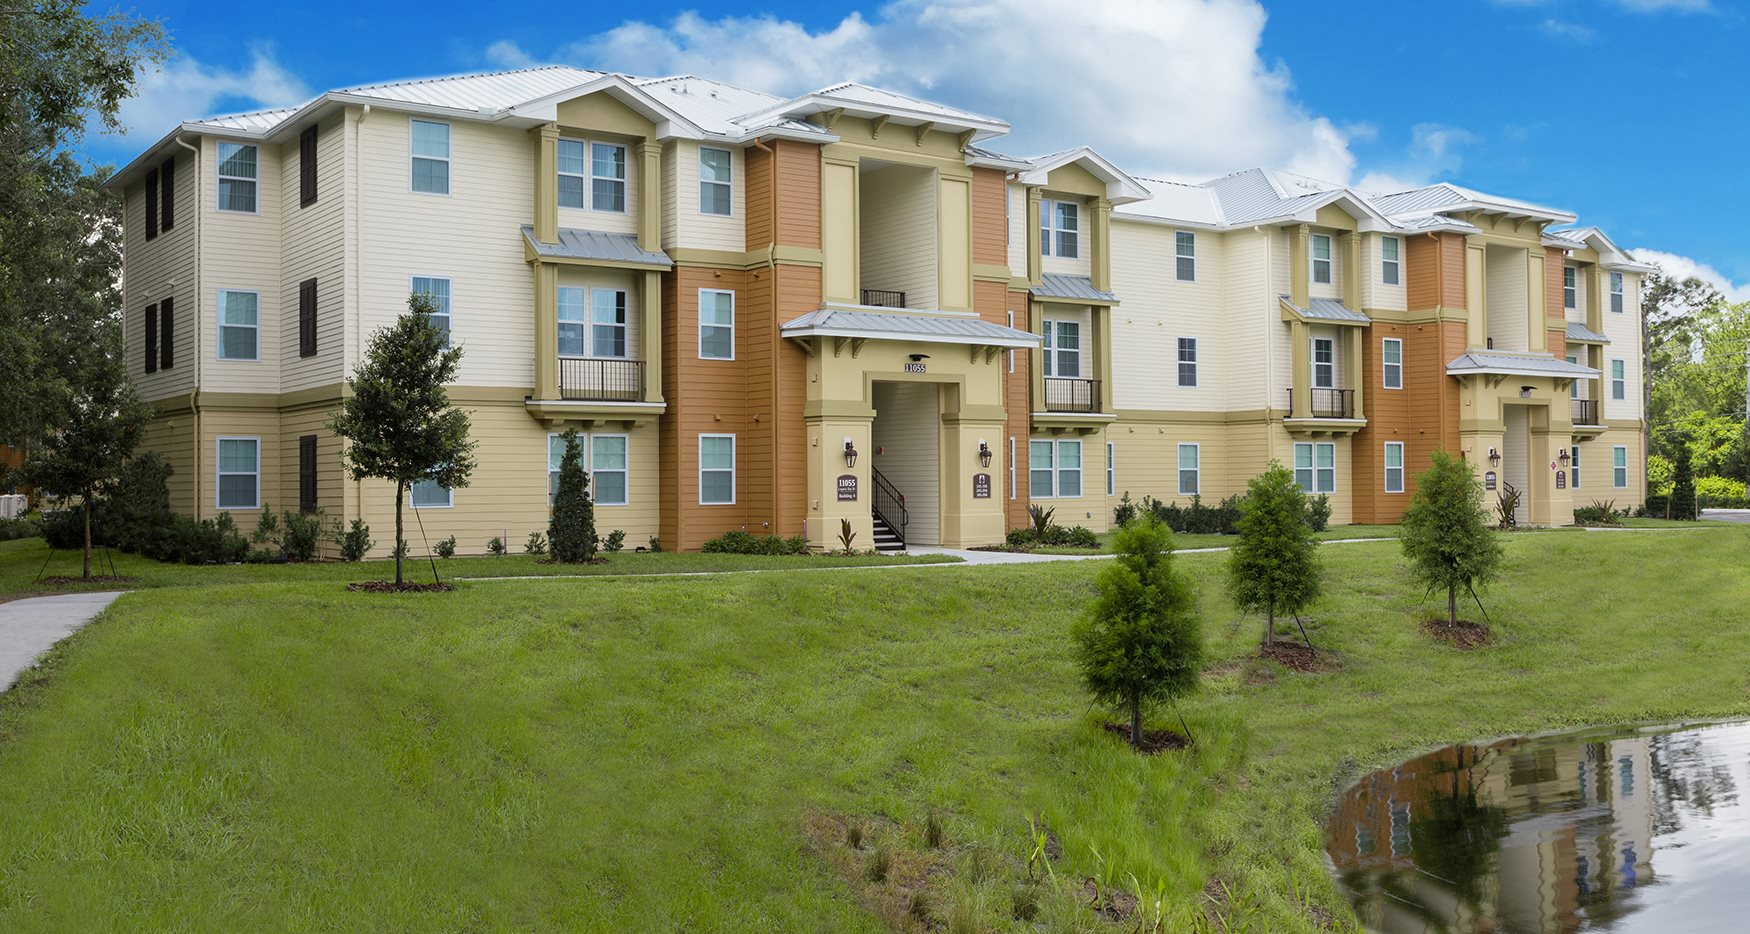 Westwood Park Apartments for rent in Orlando, FL. Make this community your new home or visit other Concord Rents communities at ConcordRents.com. Building exterior